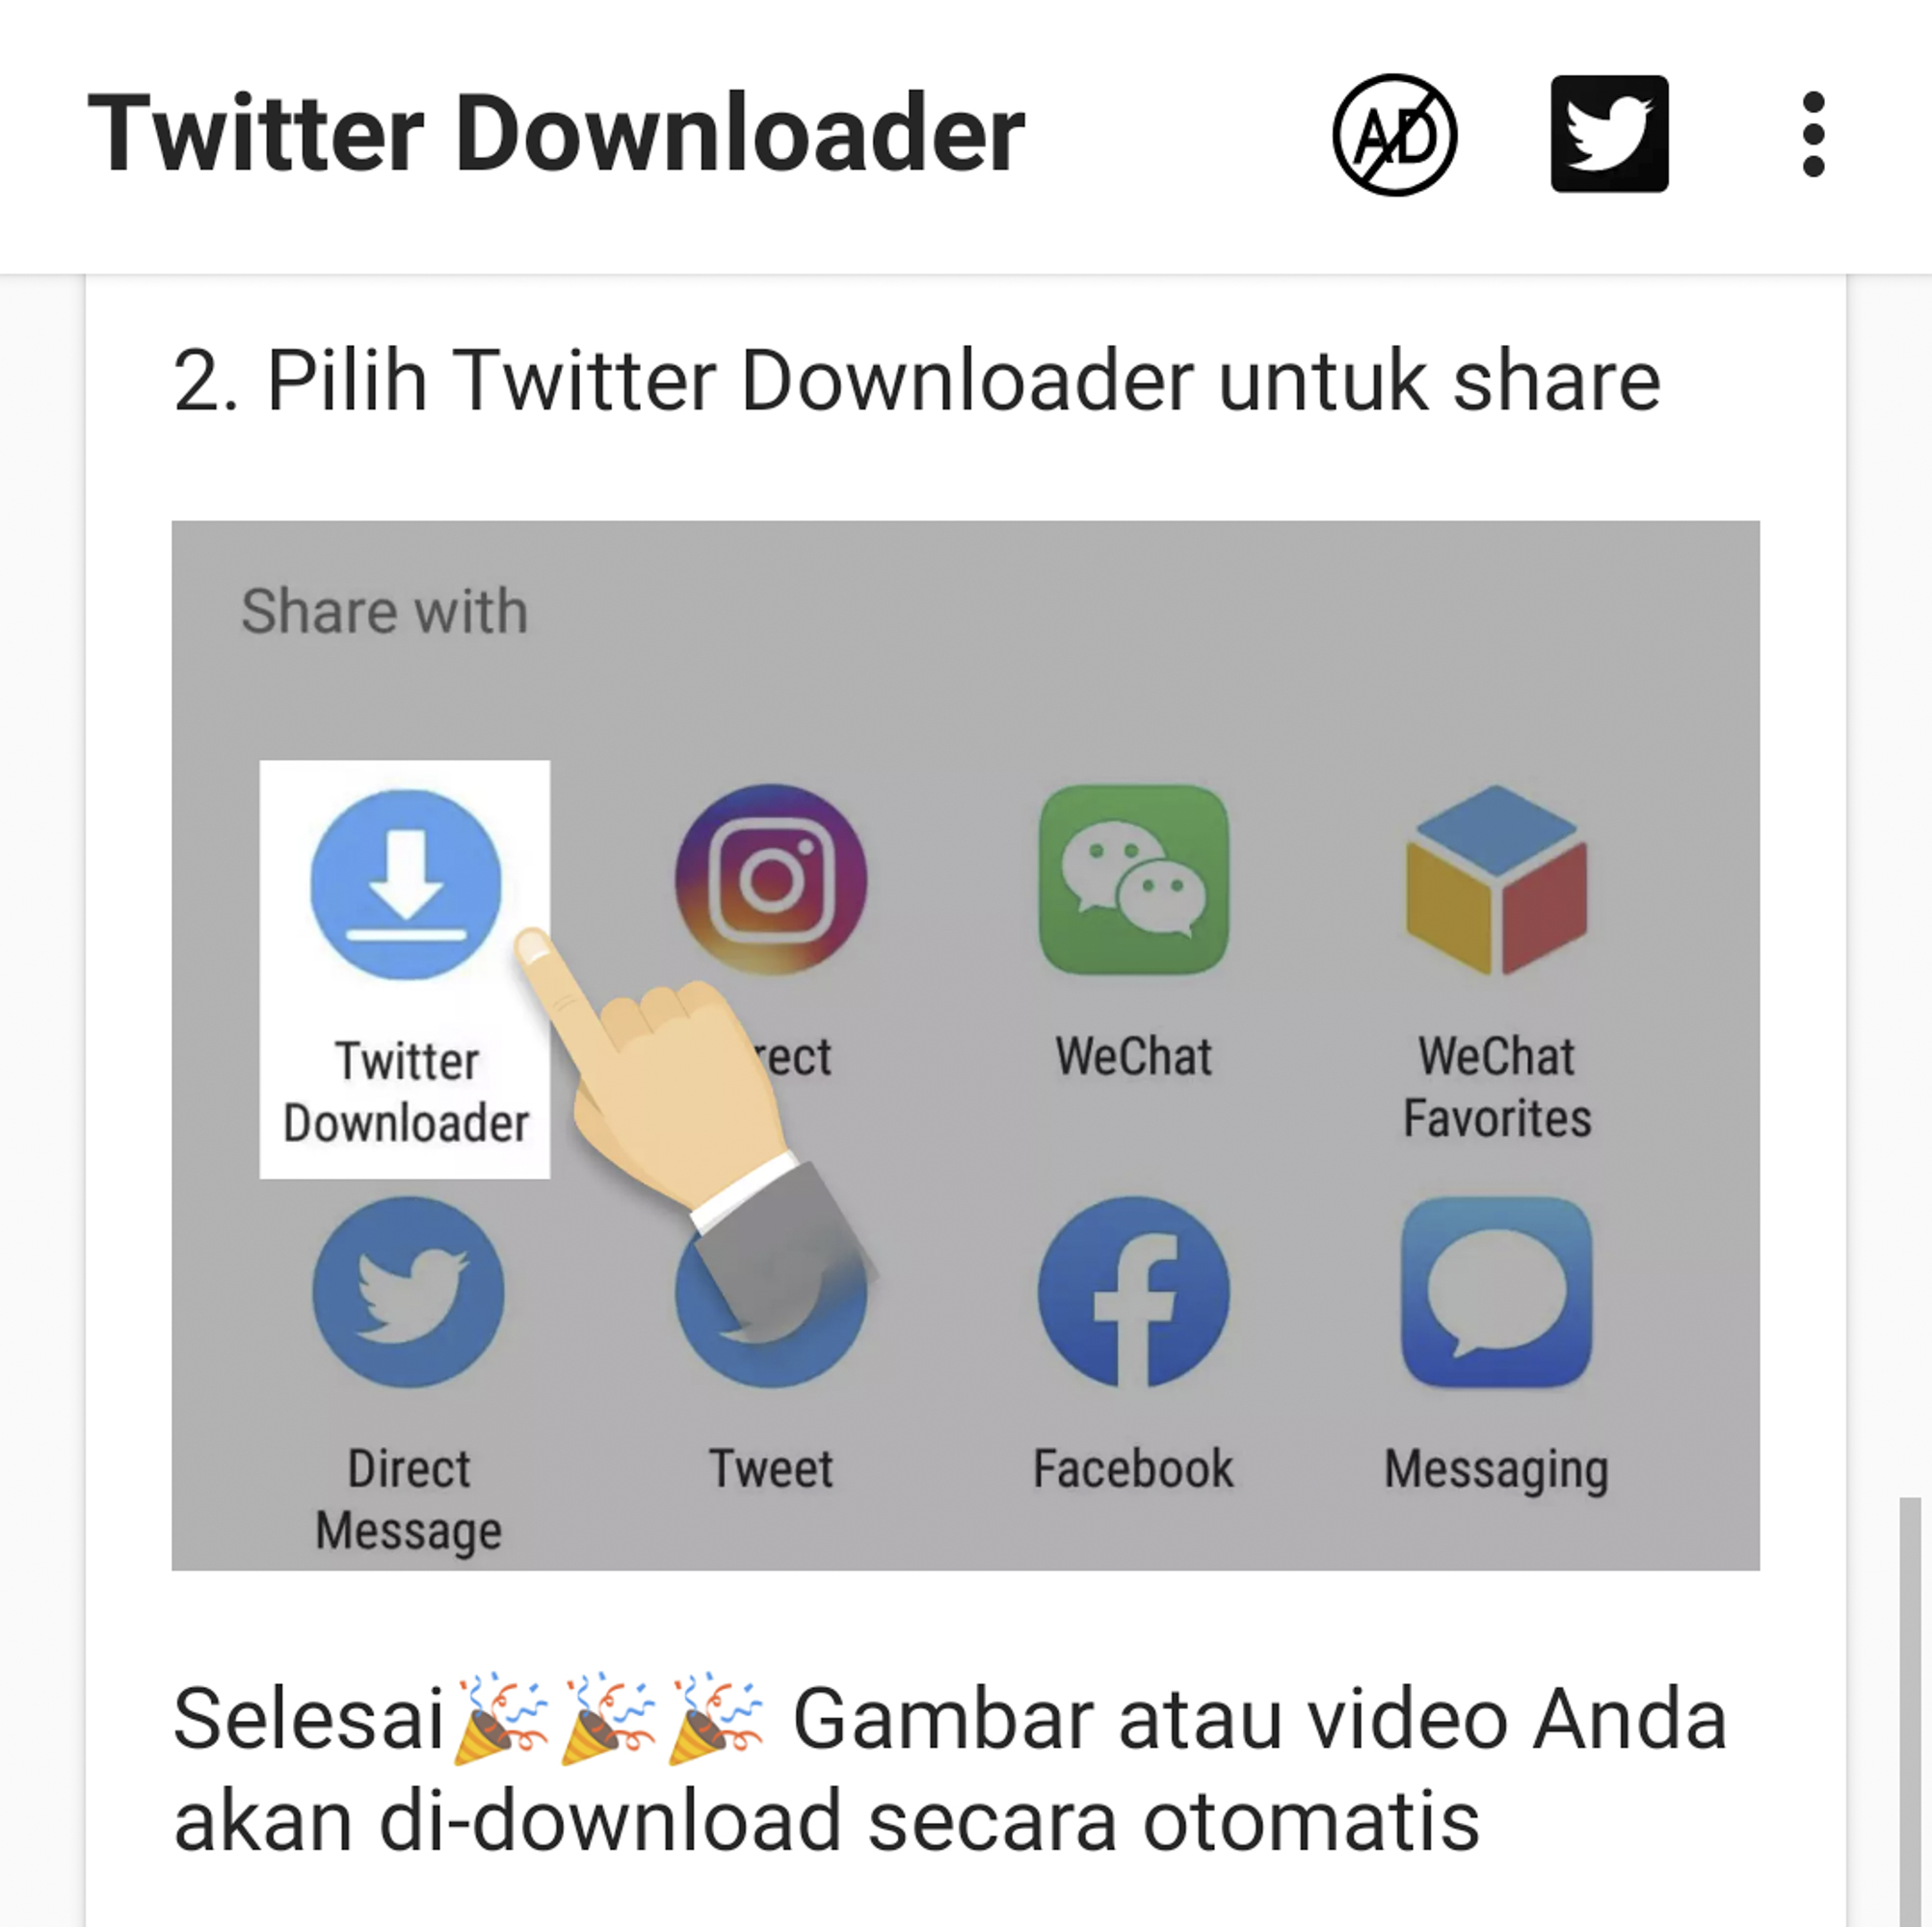 Aplikasi Twitter Downloader